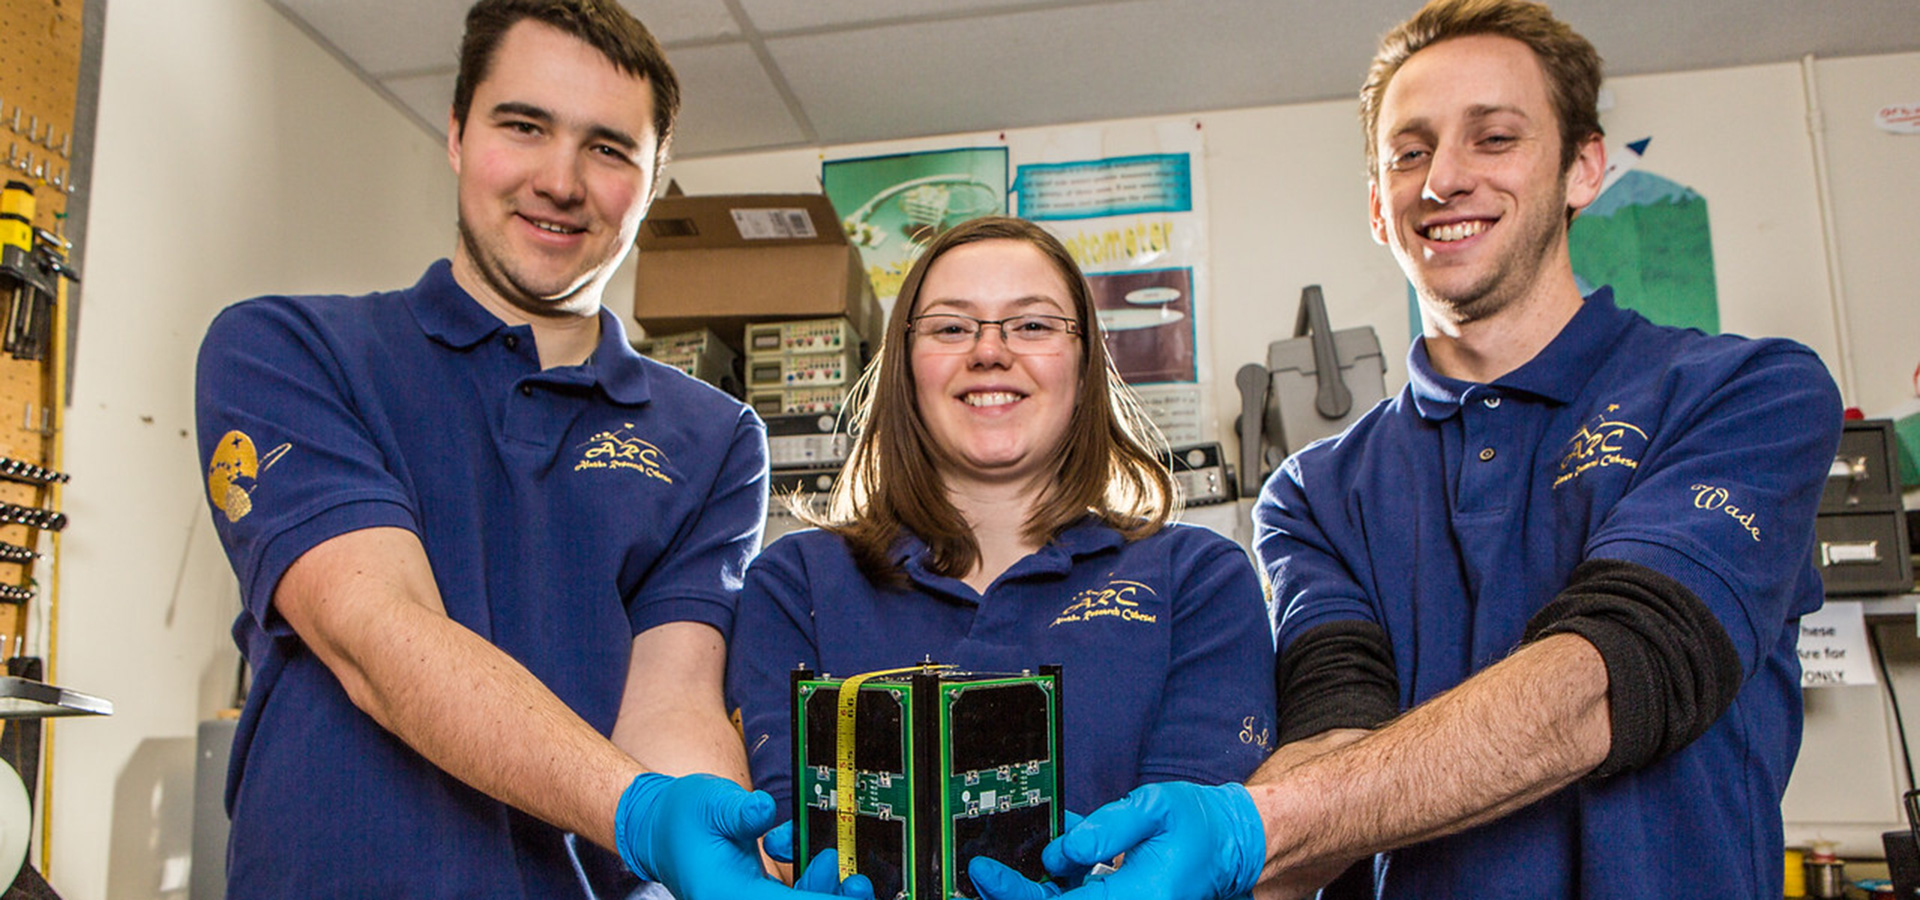 Students holding CubeSat